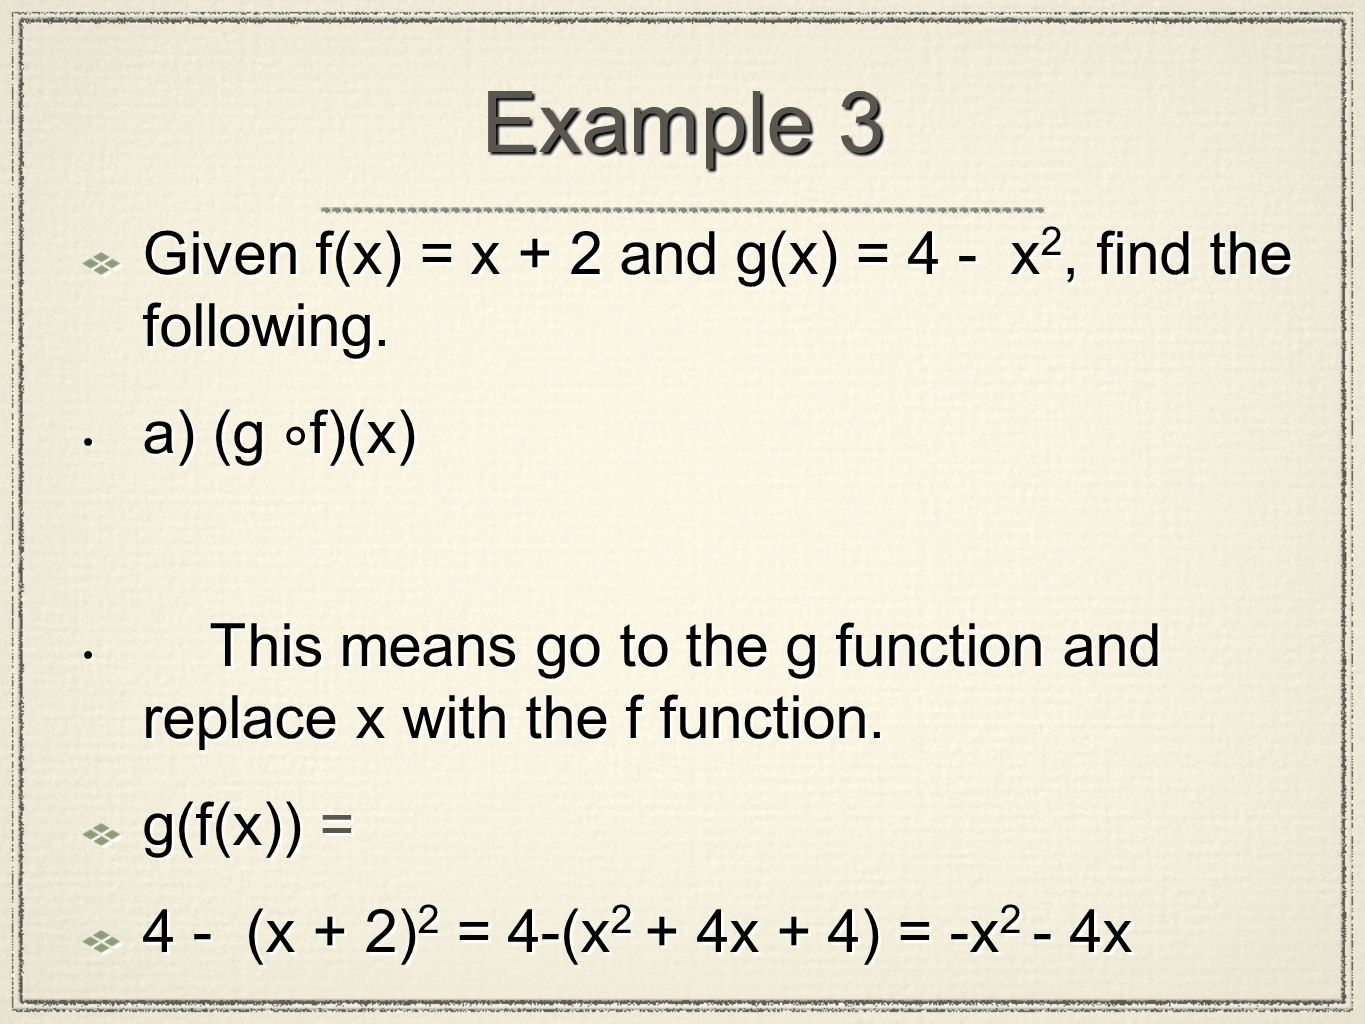 Example 3 Given f(x) = x + 2 and g(x) = 4 - x2, find the following.